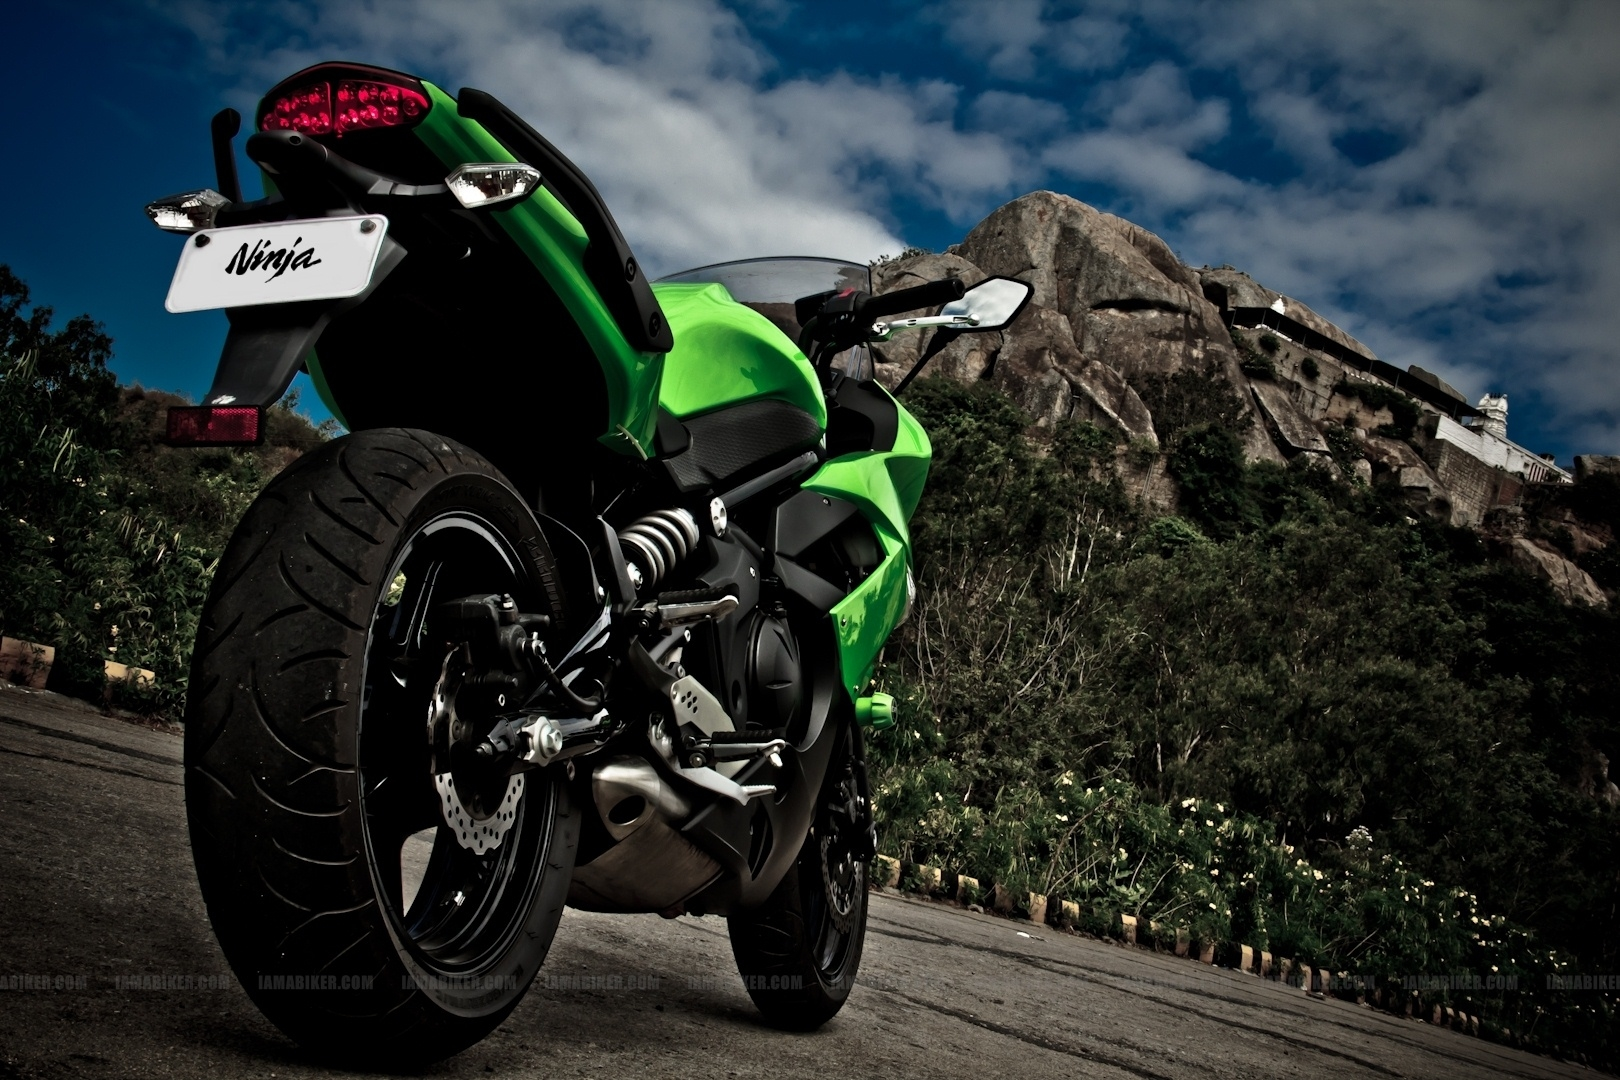 Kawasaki Ninja Bikes Available In India